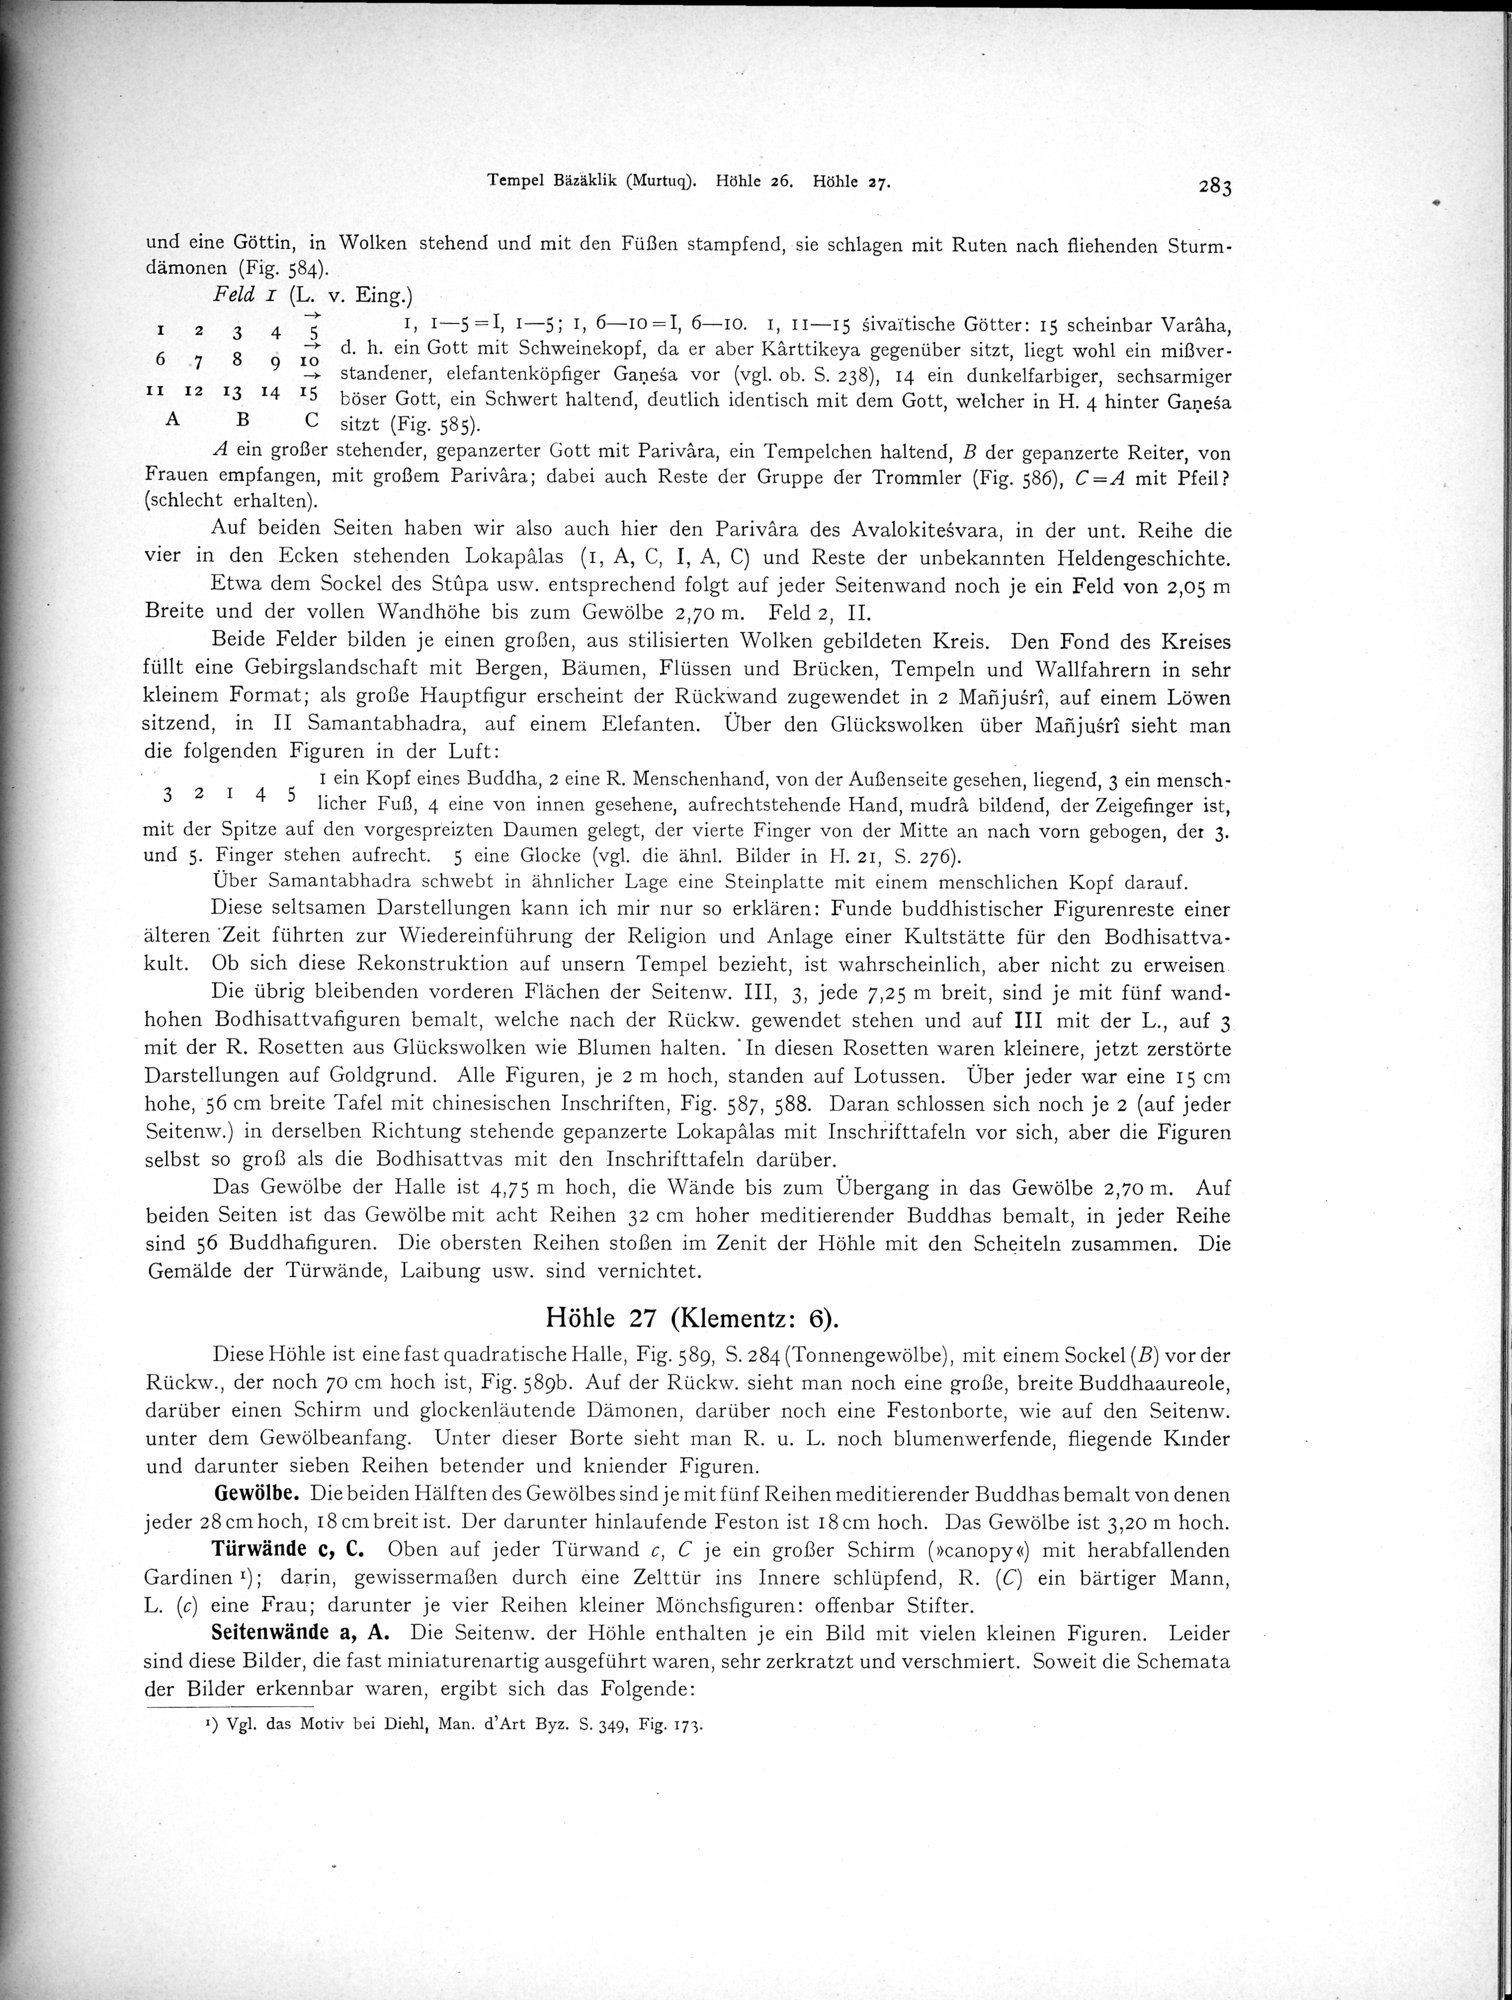 Altbuddhistische Kultstätten in Chinesisch-Turkistan : vol.1 / Page 289 (Grayscale High Resolution Image)